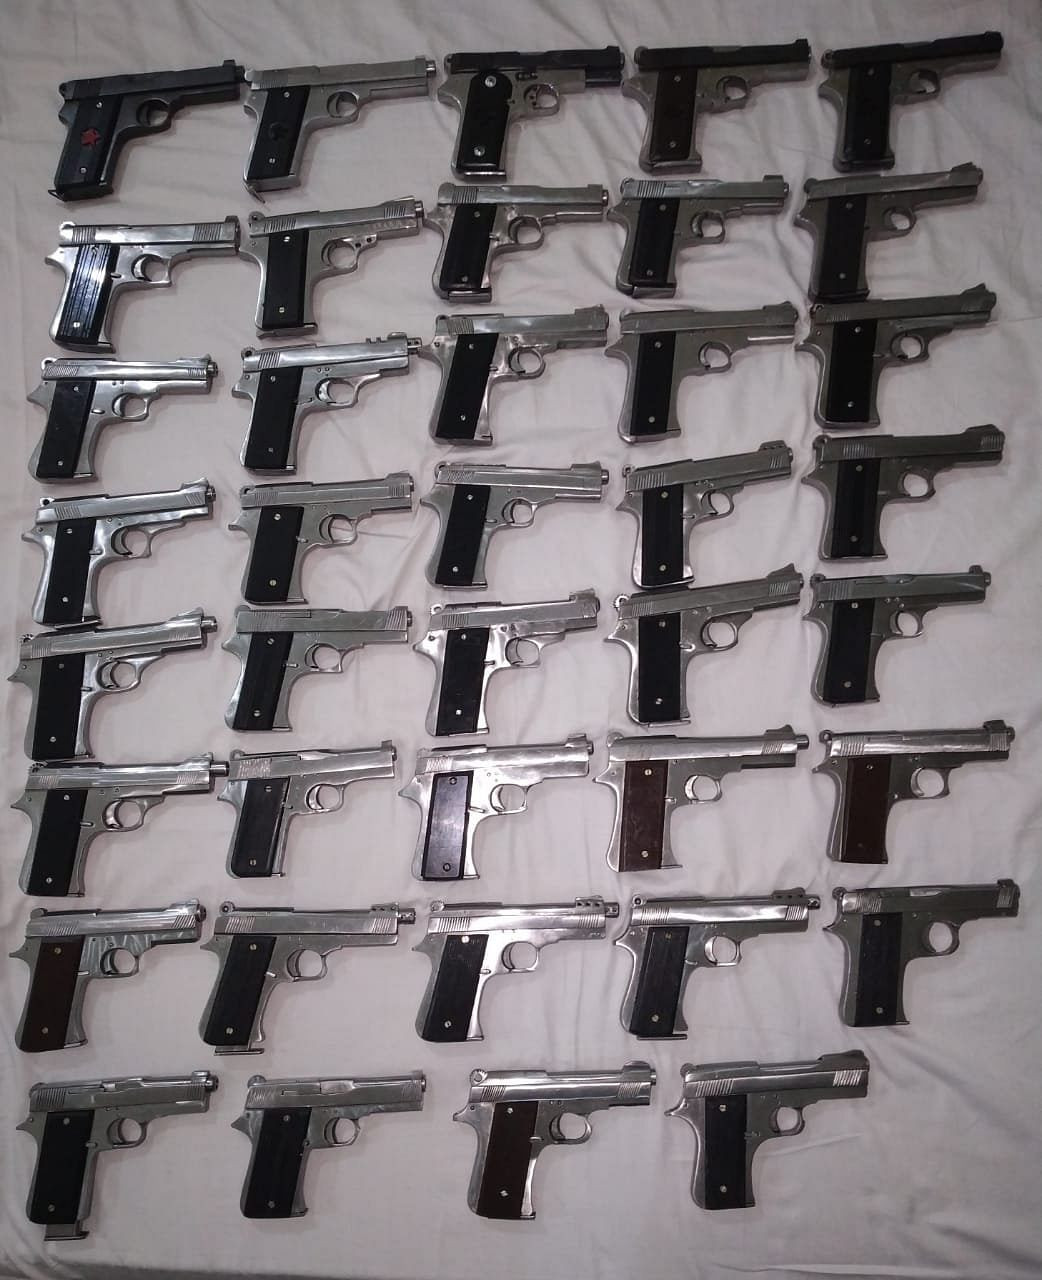 Madhya Pradesh: Punjab Police nabs another module of MP-based illegal weapons supply network busted